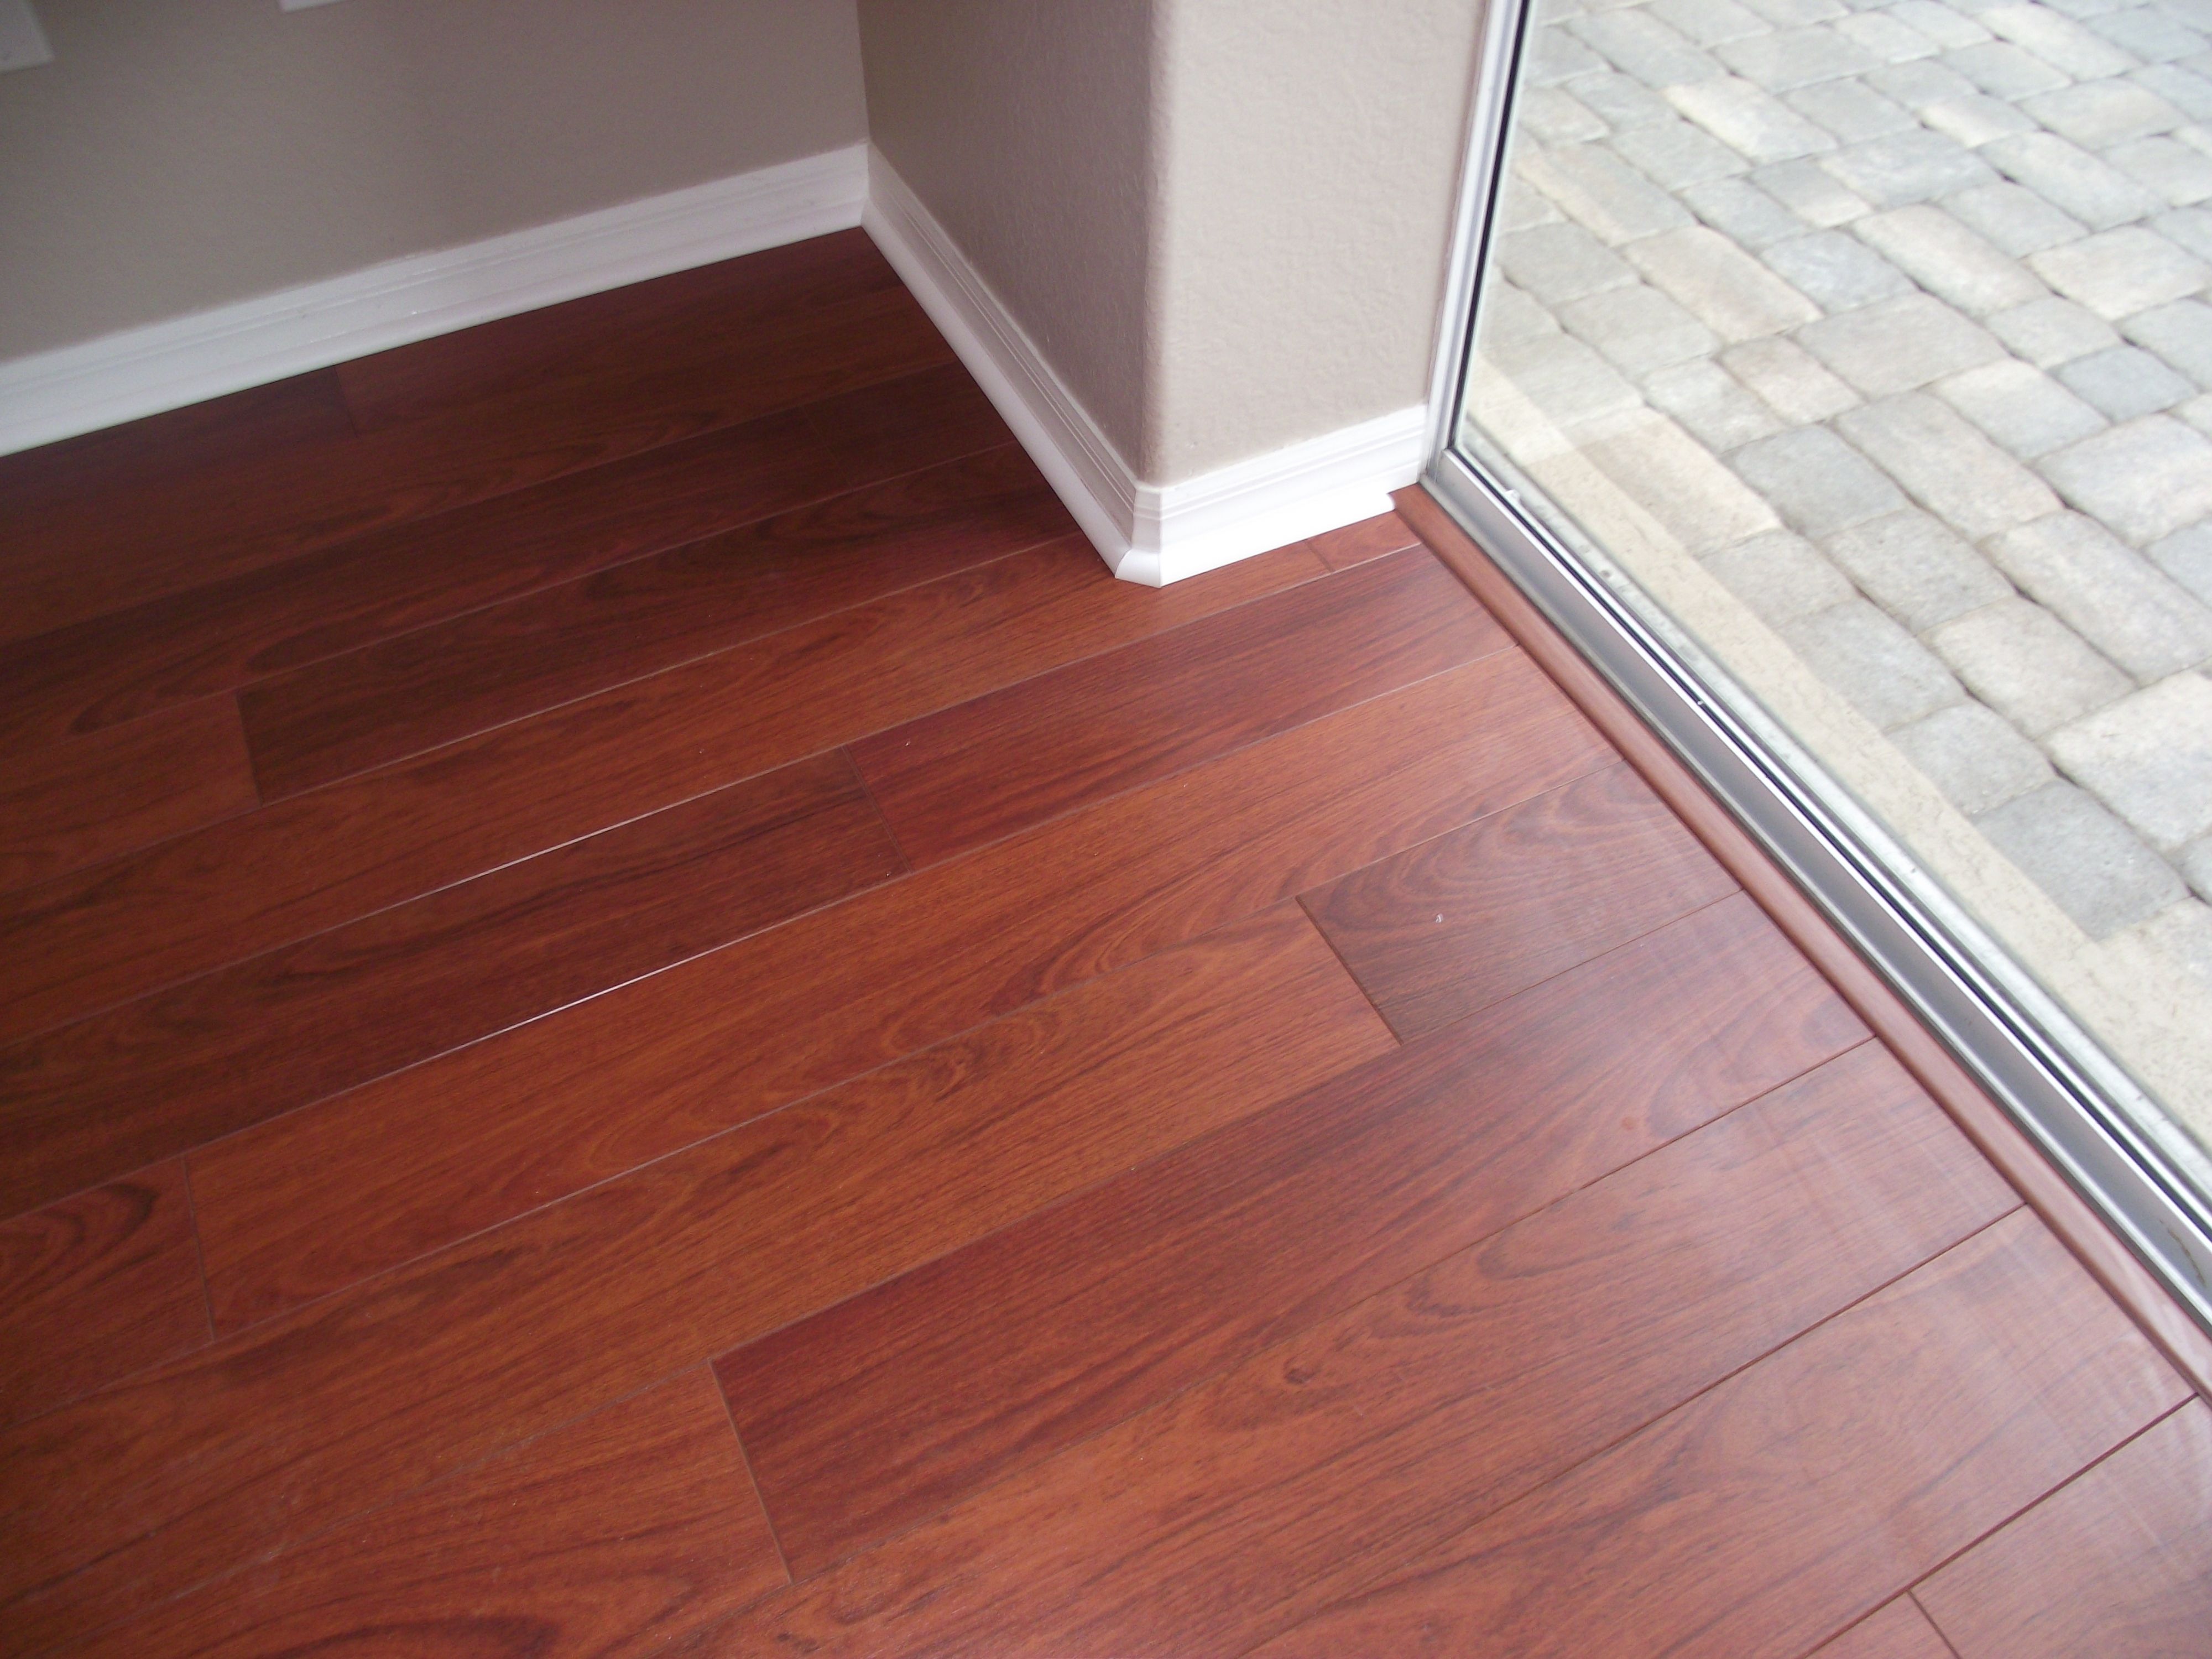 Finished Laminate Flooring At Sliding Glass Door. Pose De Sol StratifiéPorte  ...